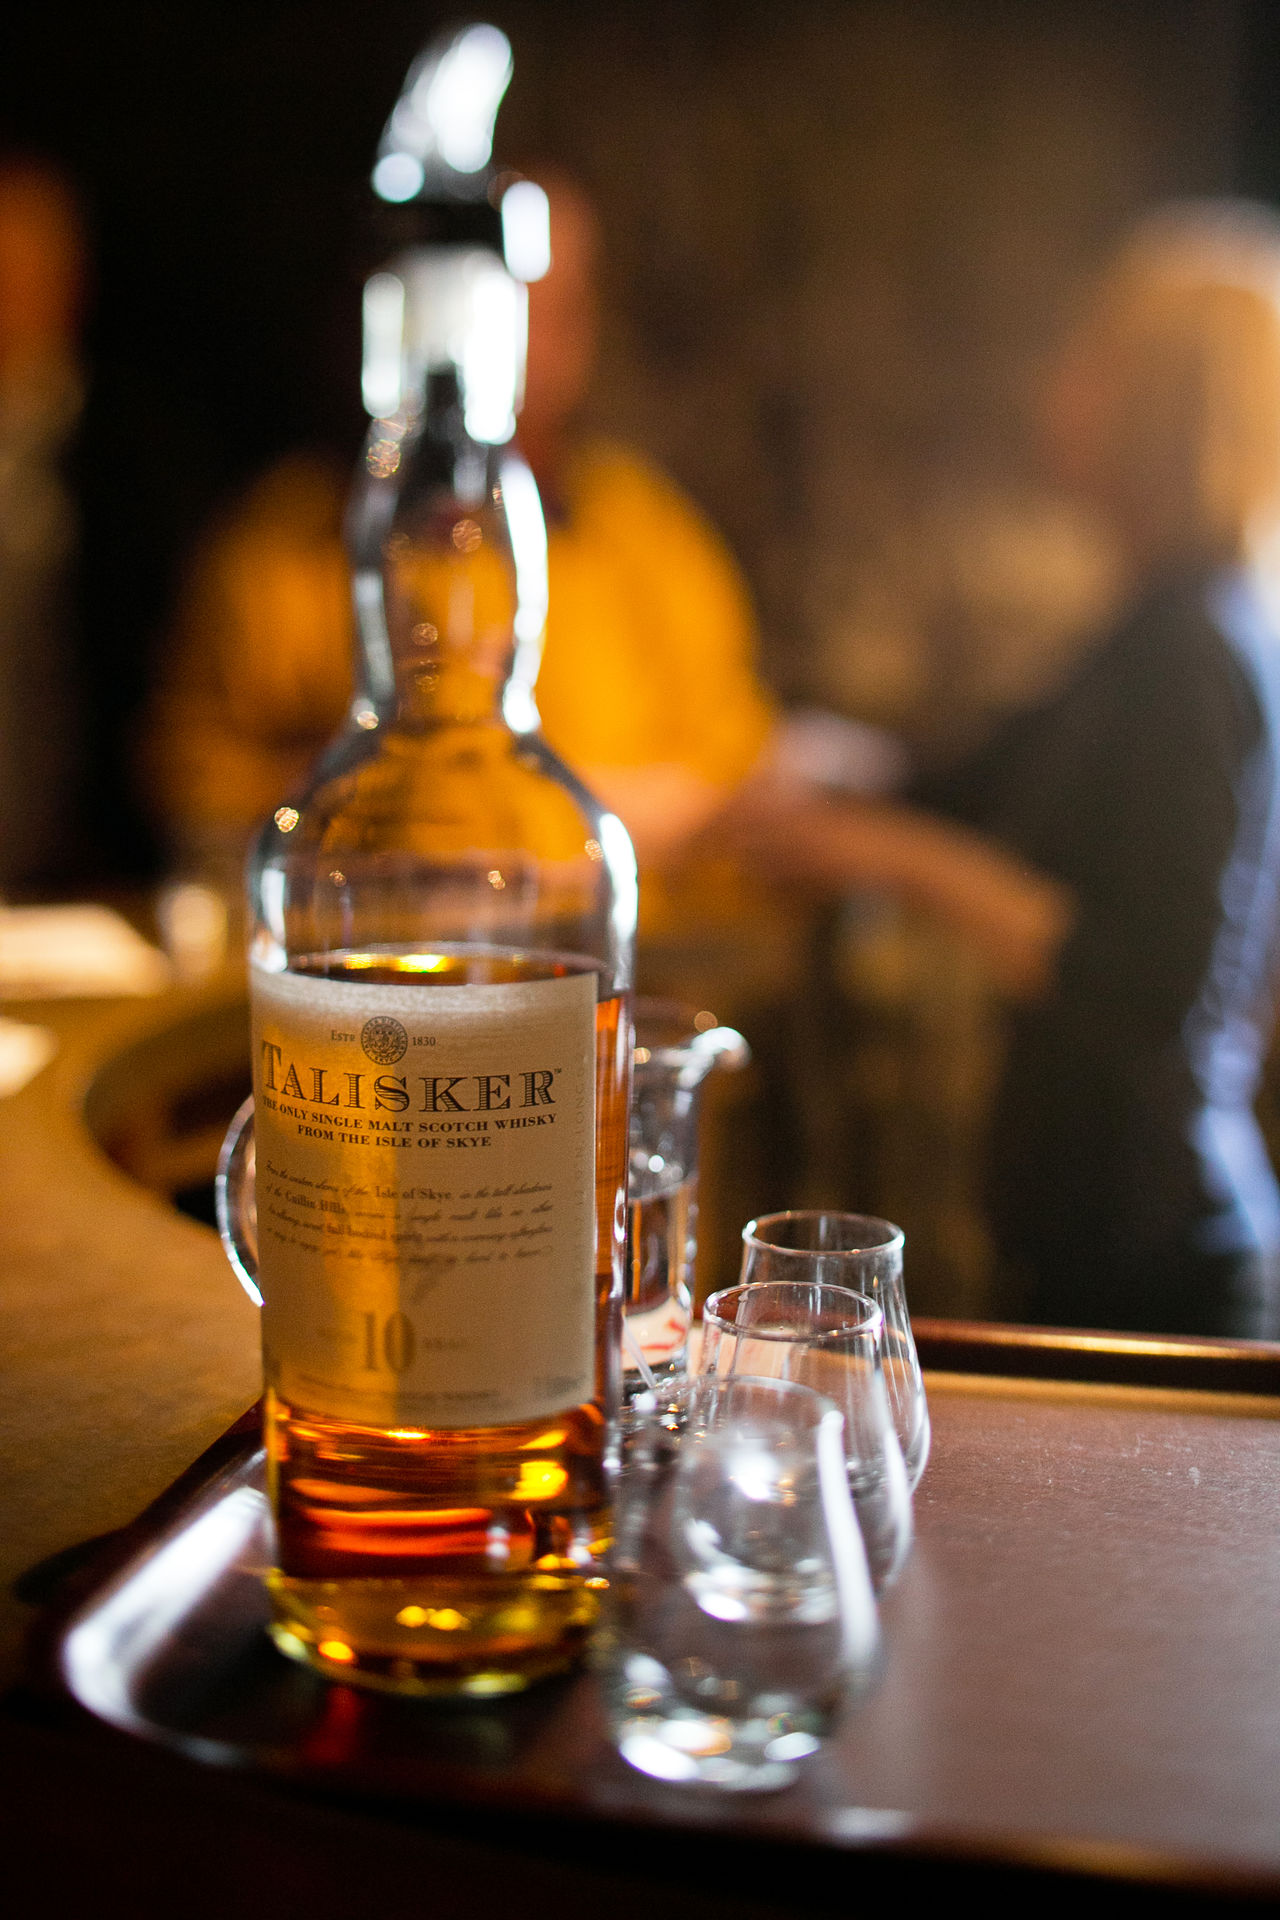 Talisker Alcohol Close-up Day Drink Drinking Glass Focus On Foreground Food And Drink Freshness Indoors  Real People Refreshment Table Whiskey